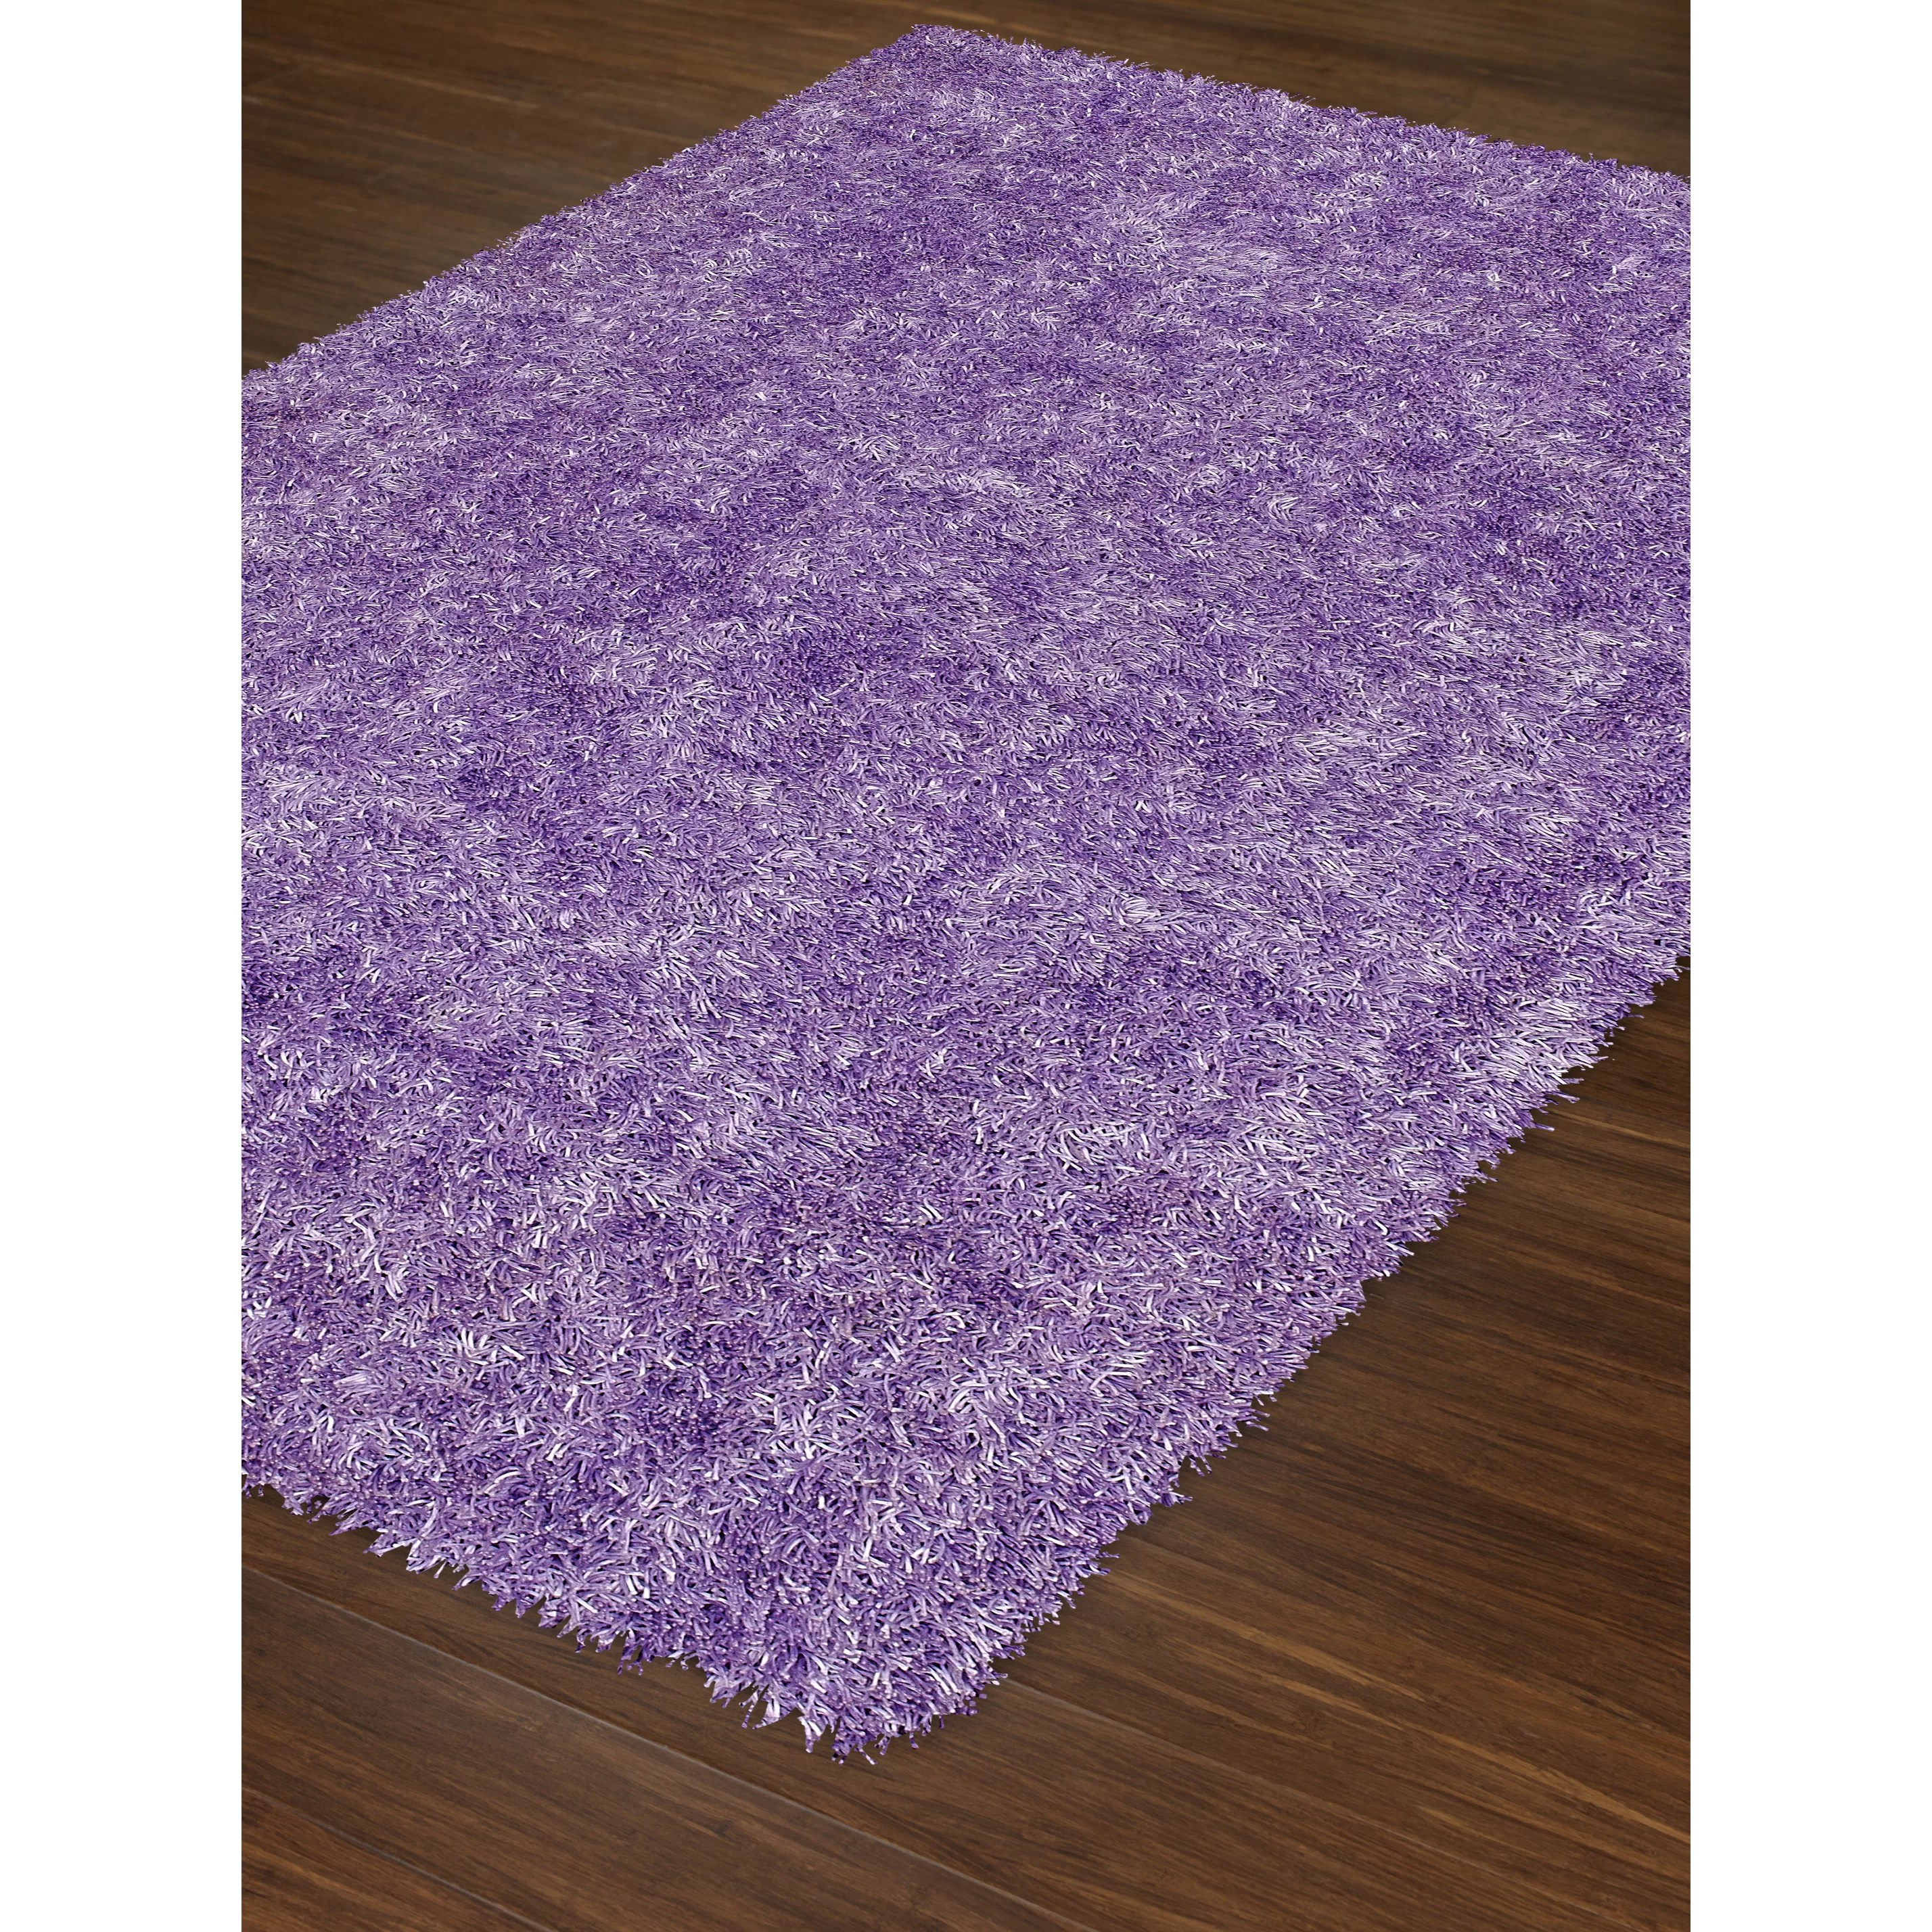 Bright Rugs Dalyn Rug Co Bright Lights Lilac Area Rug And Reviews Wayfair